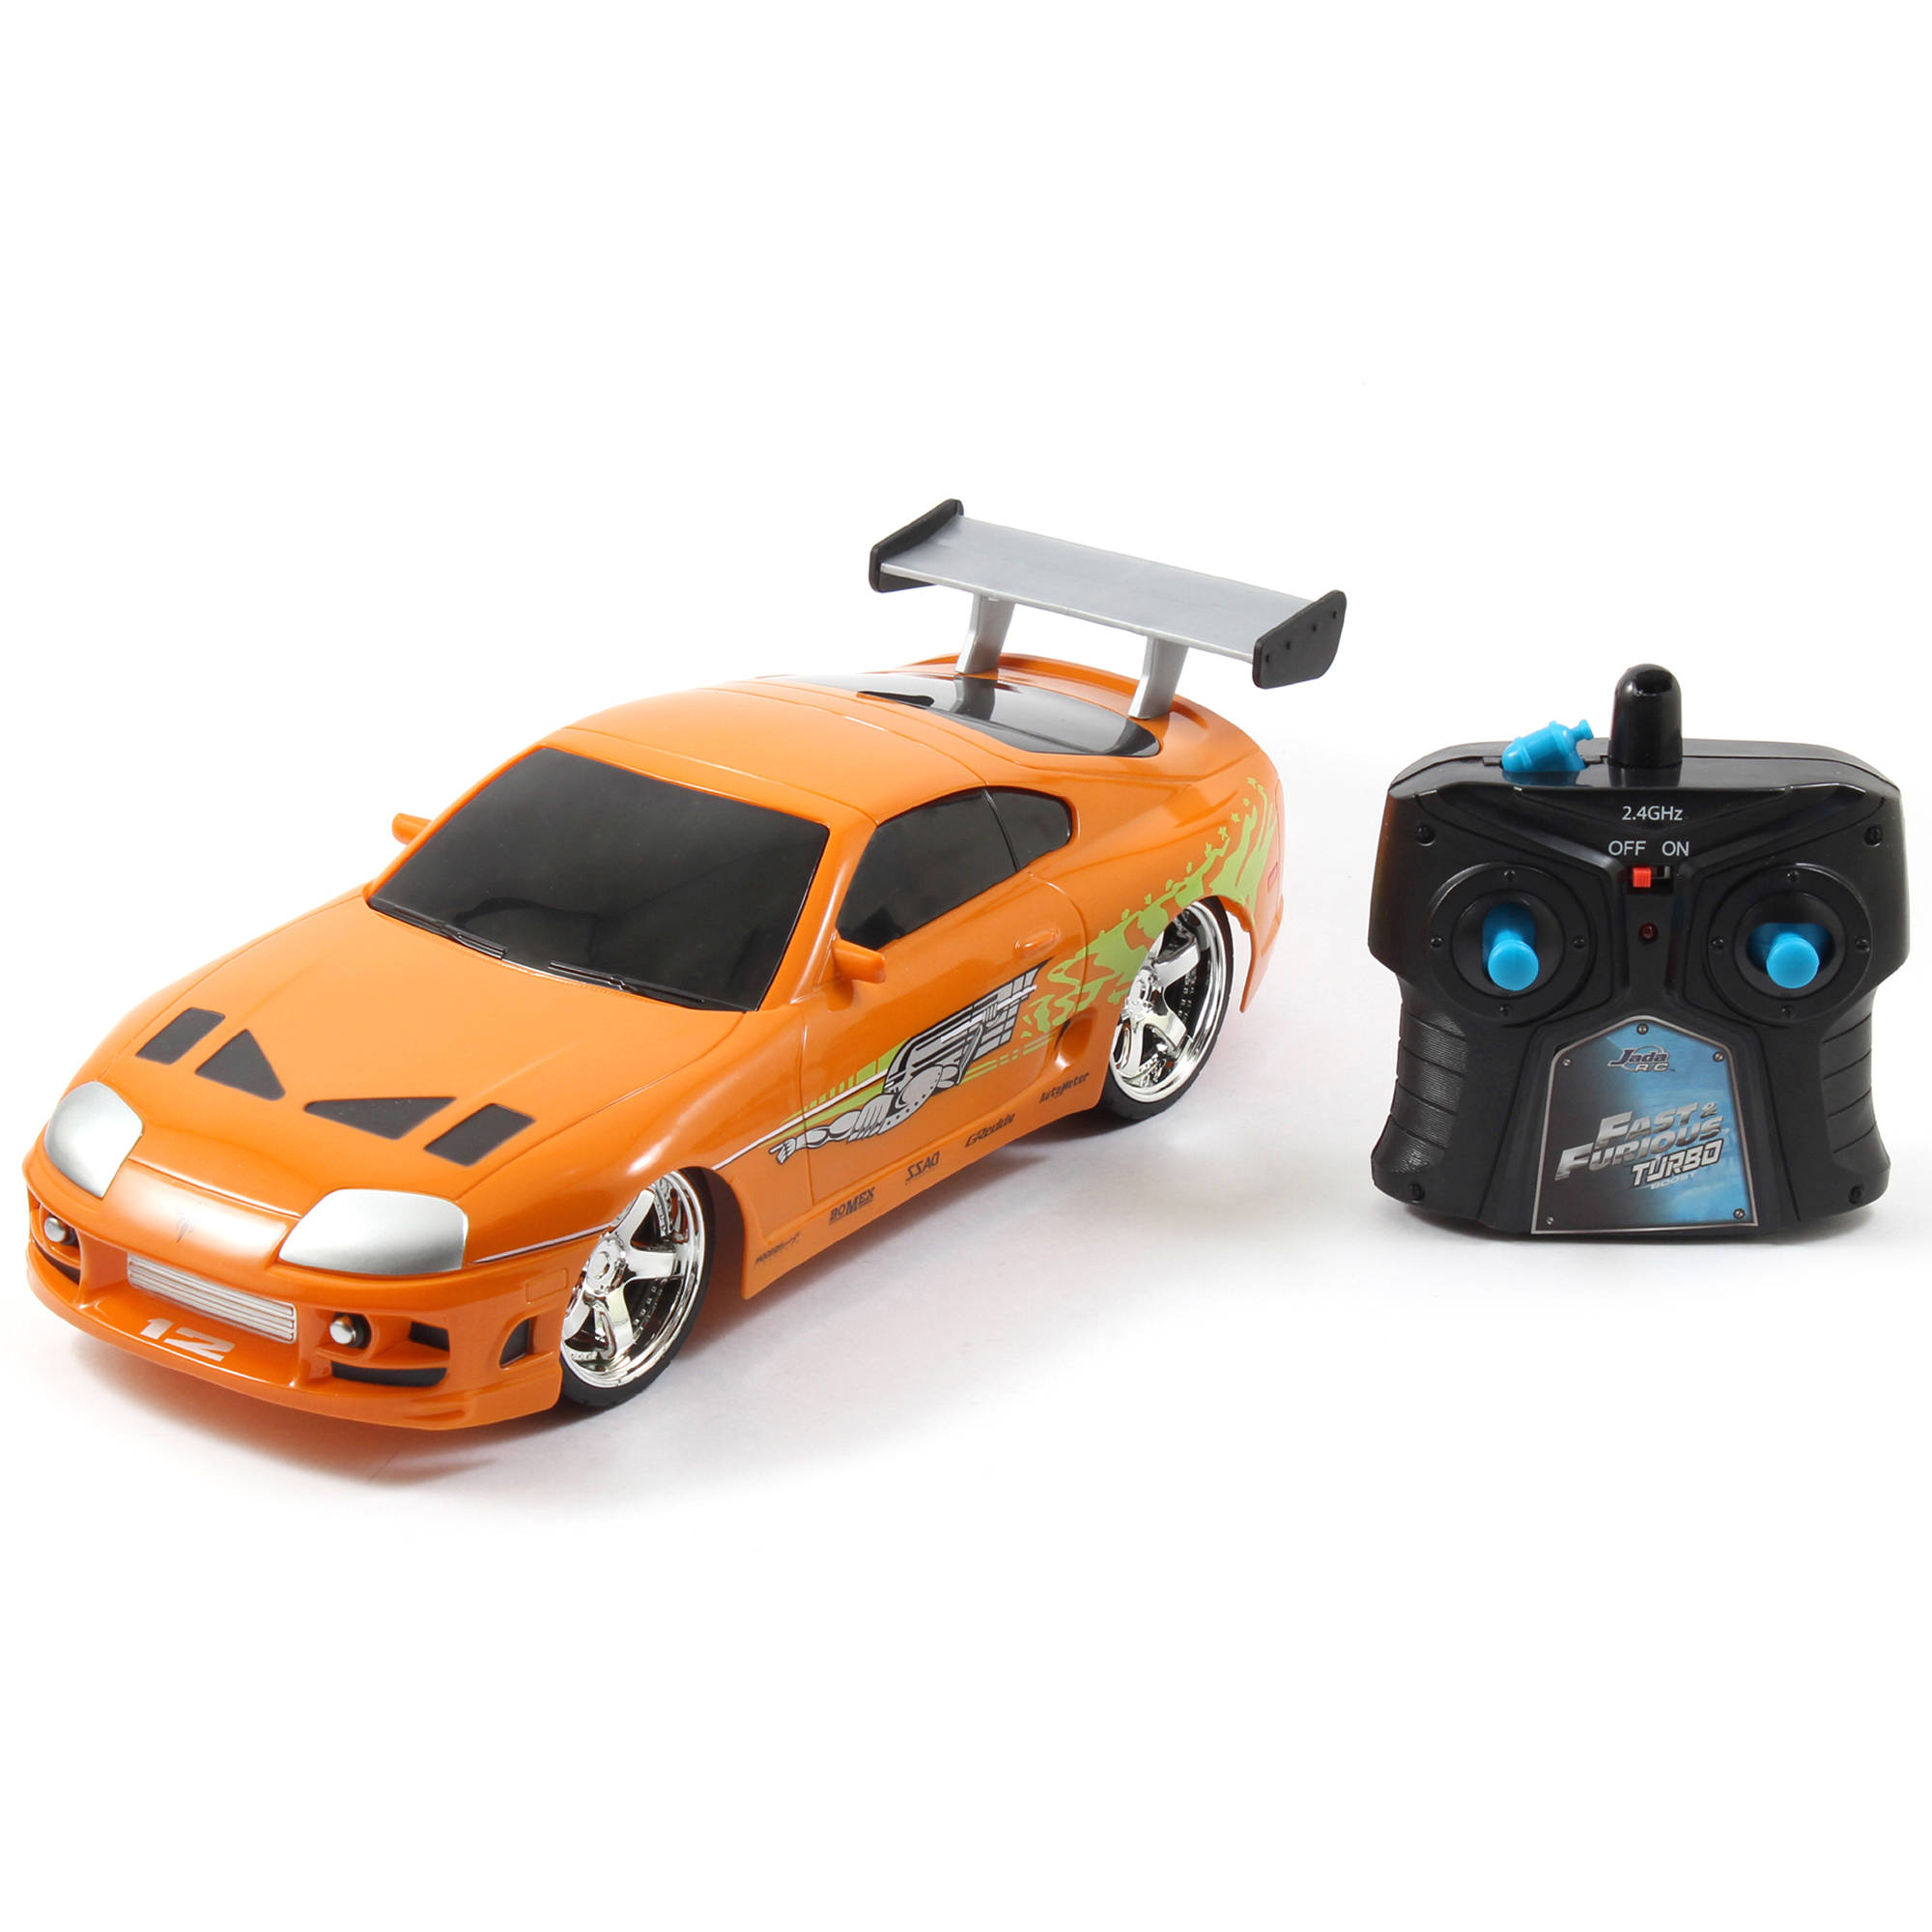 Jada Toys Fast and Furious 1:16 Radio Control Car, Brian's Toyota Supra by Jada Toys